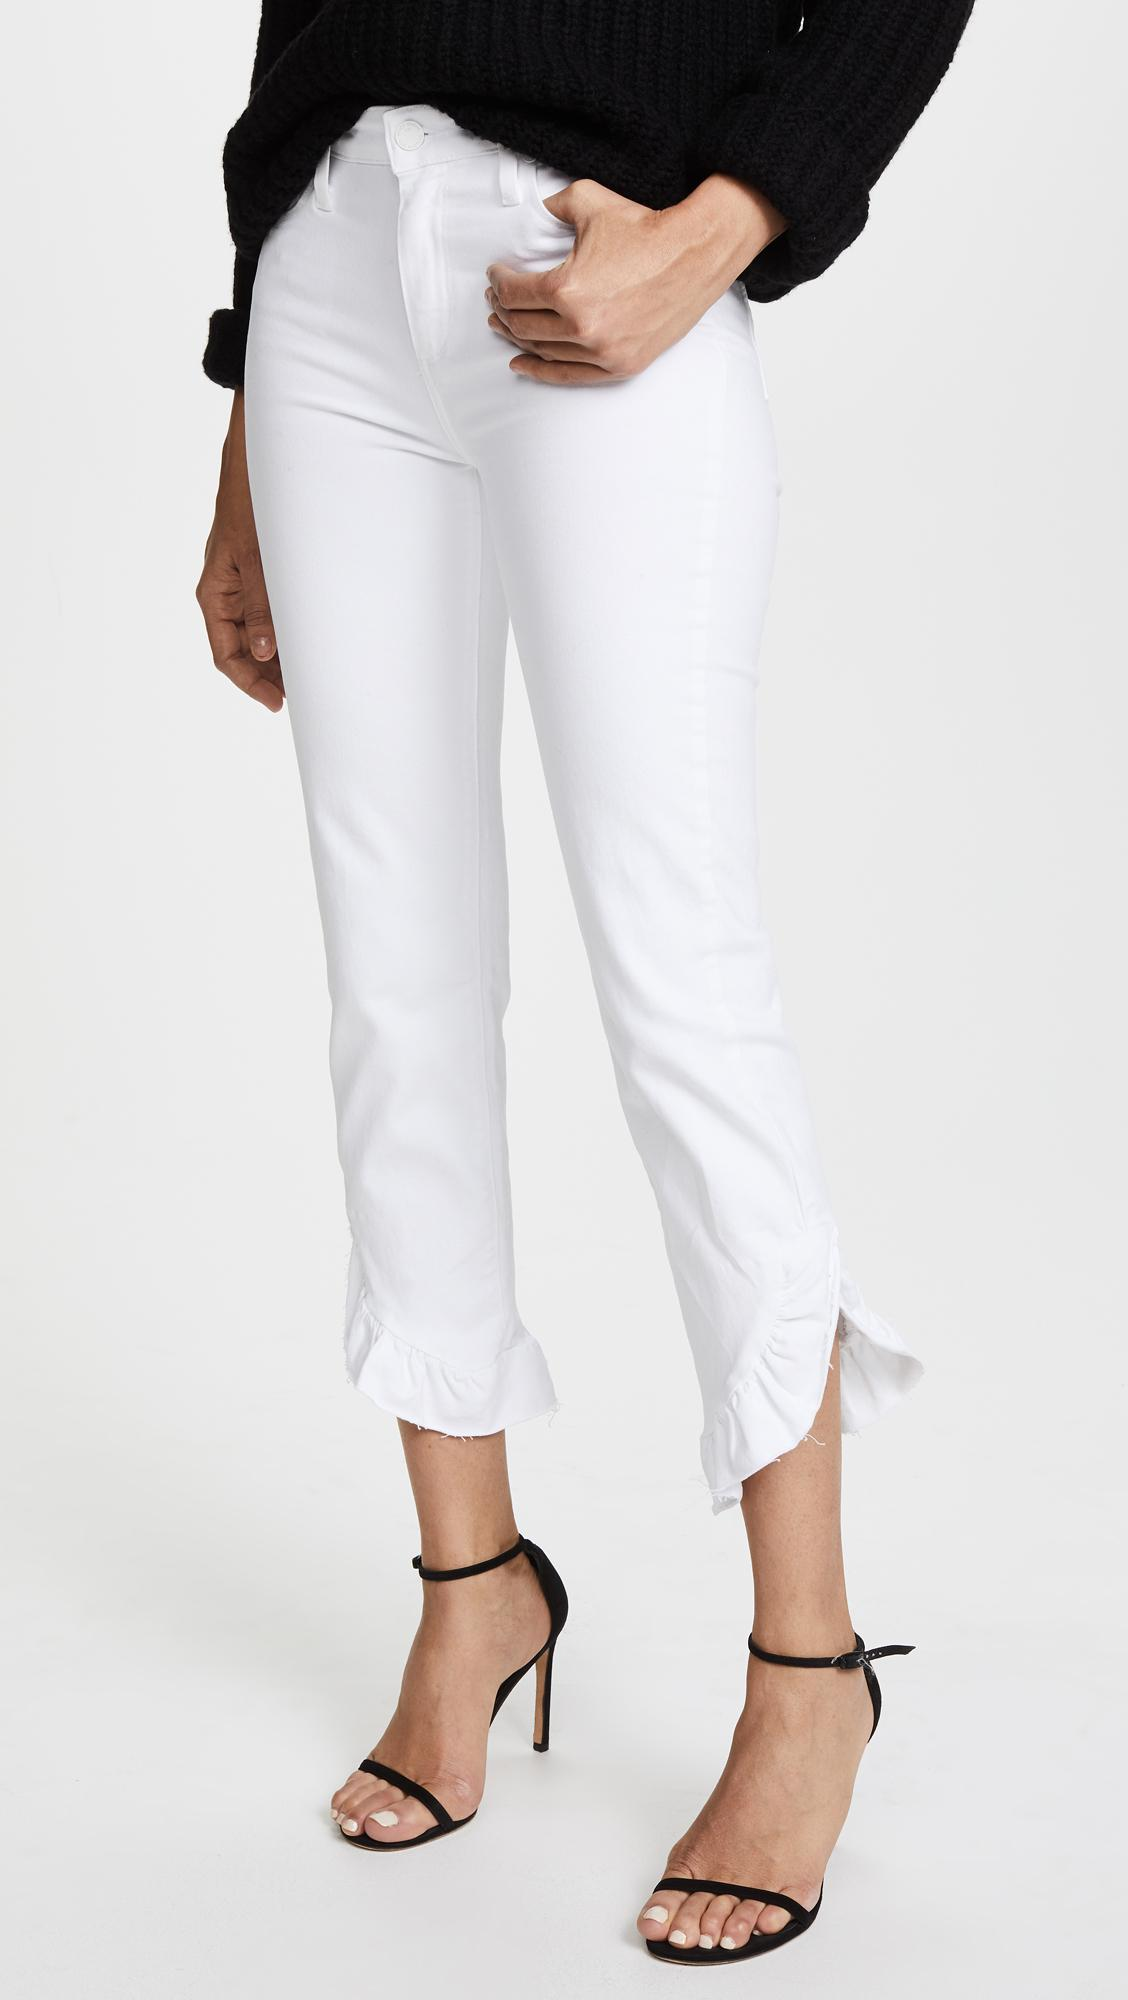 a6a69280f31 Lyst - PAIGE Transcend Hoxton Straight Ruffle Jeans in White